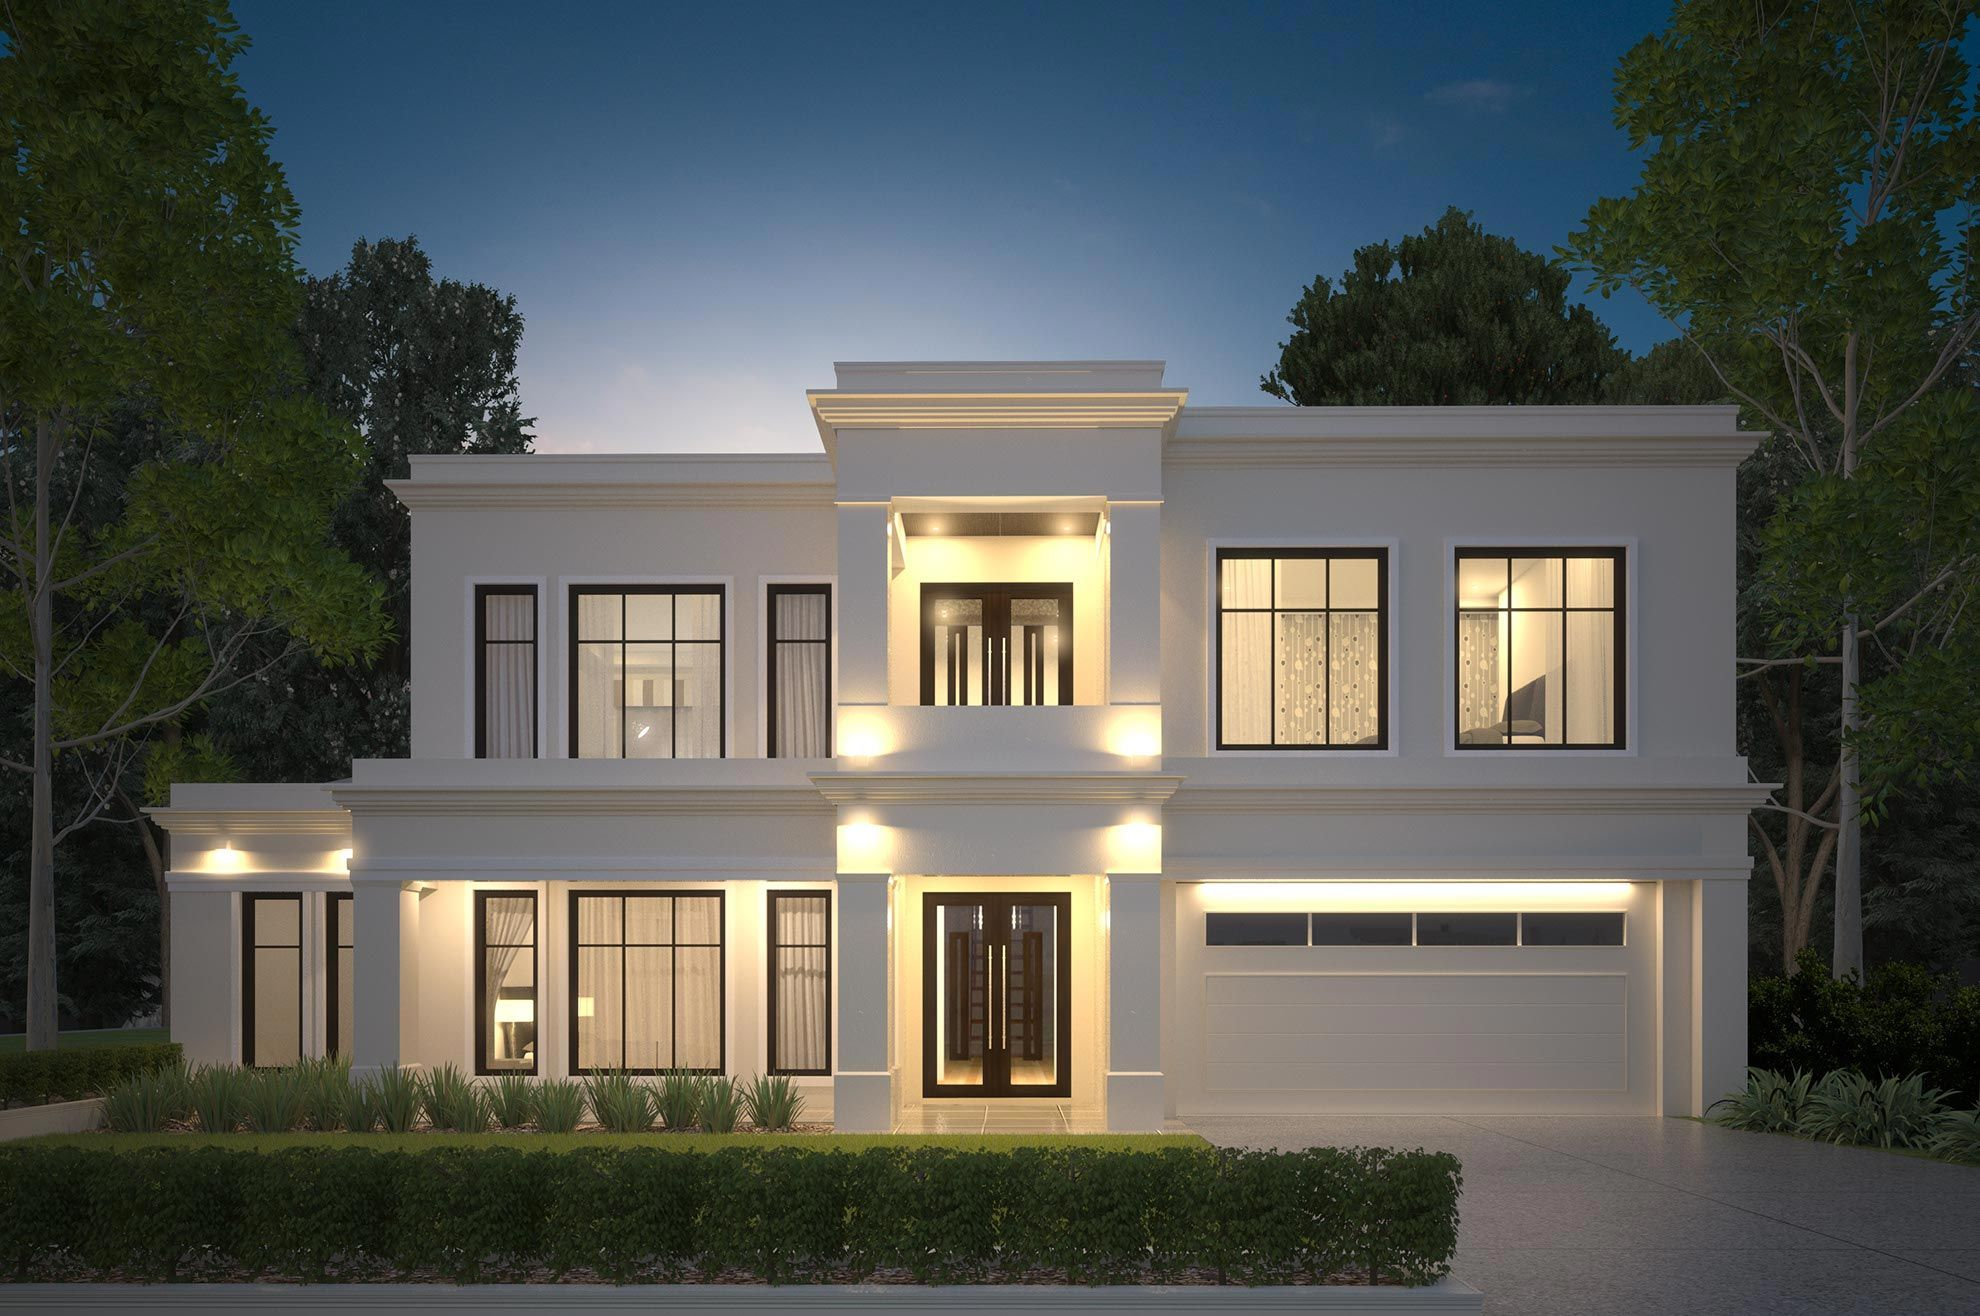 9c12d91d6c57ea3b31883c65c00f646a - 41+ Small Luxury Modern House Design  Pictures